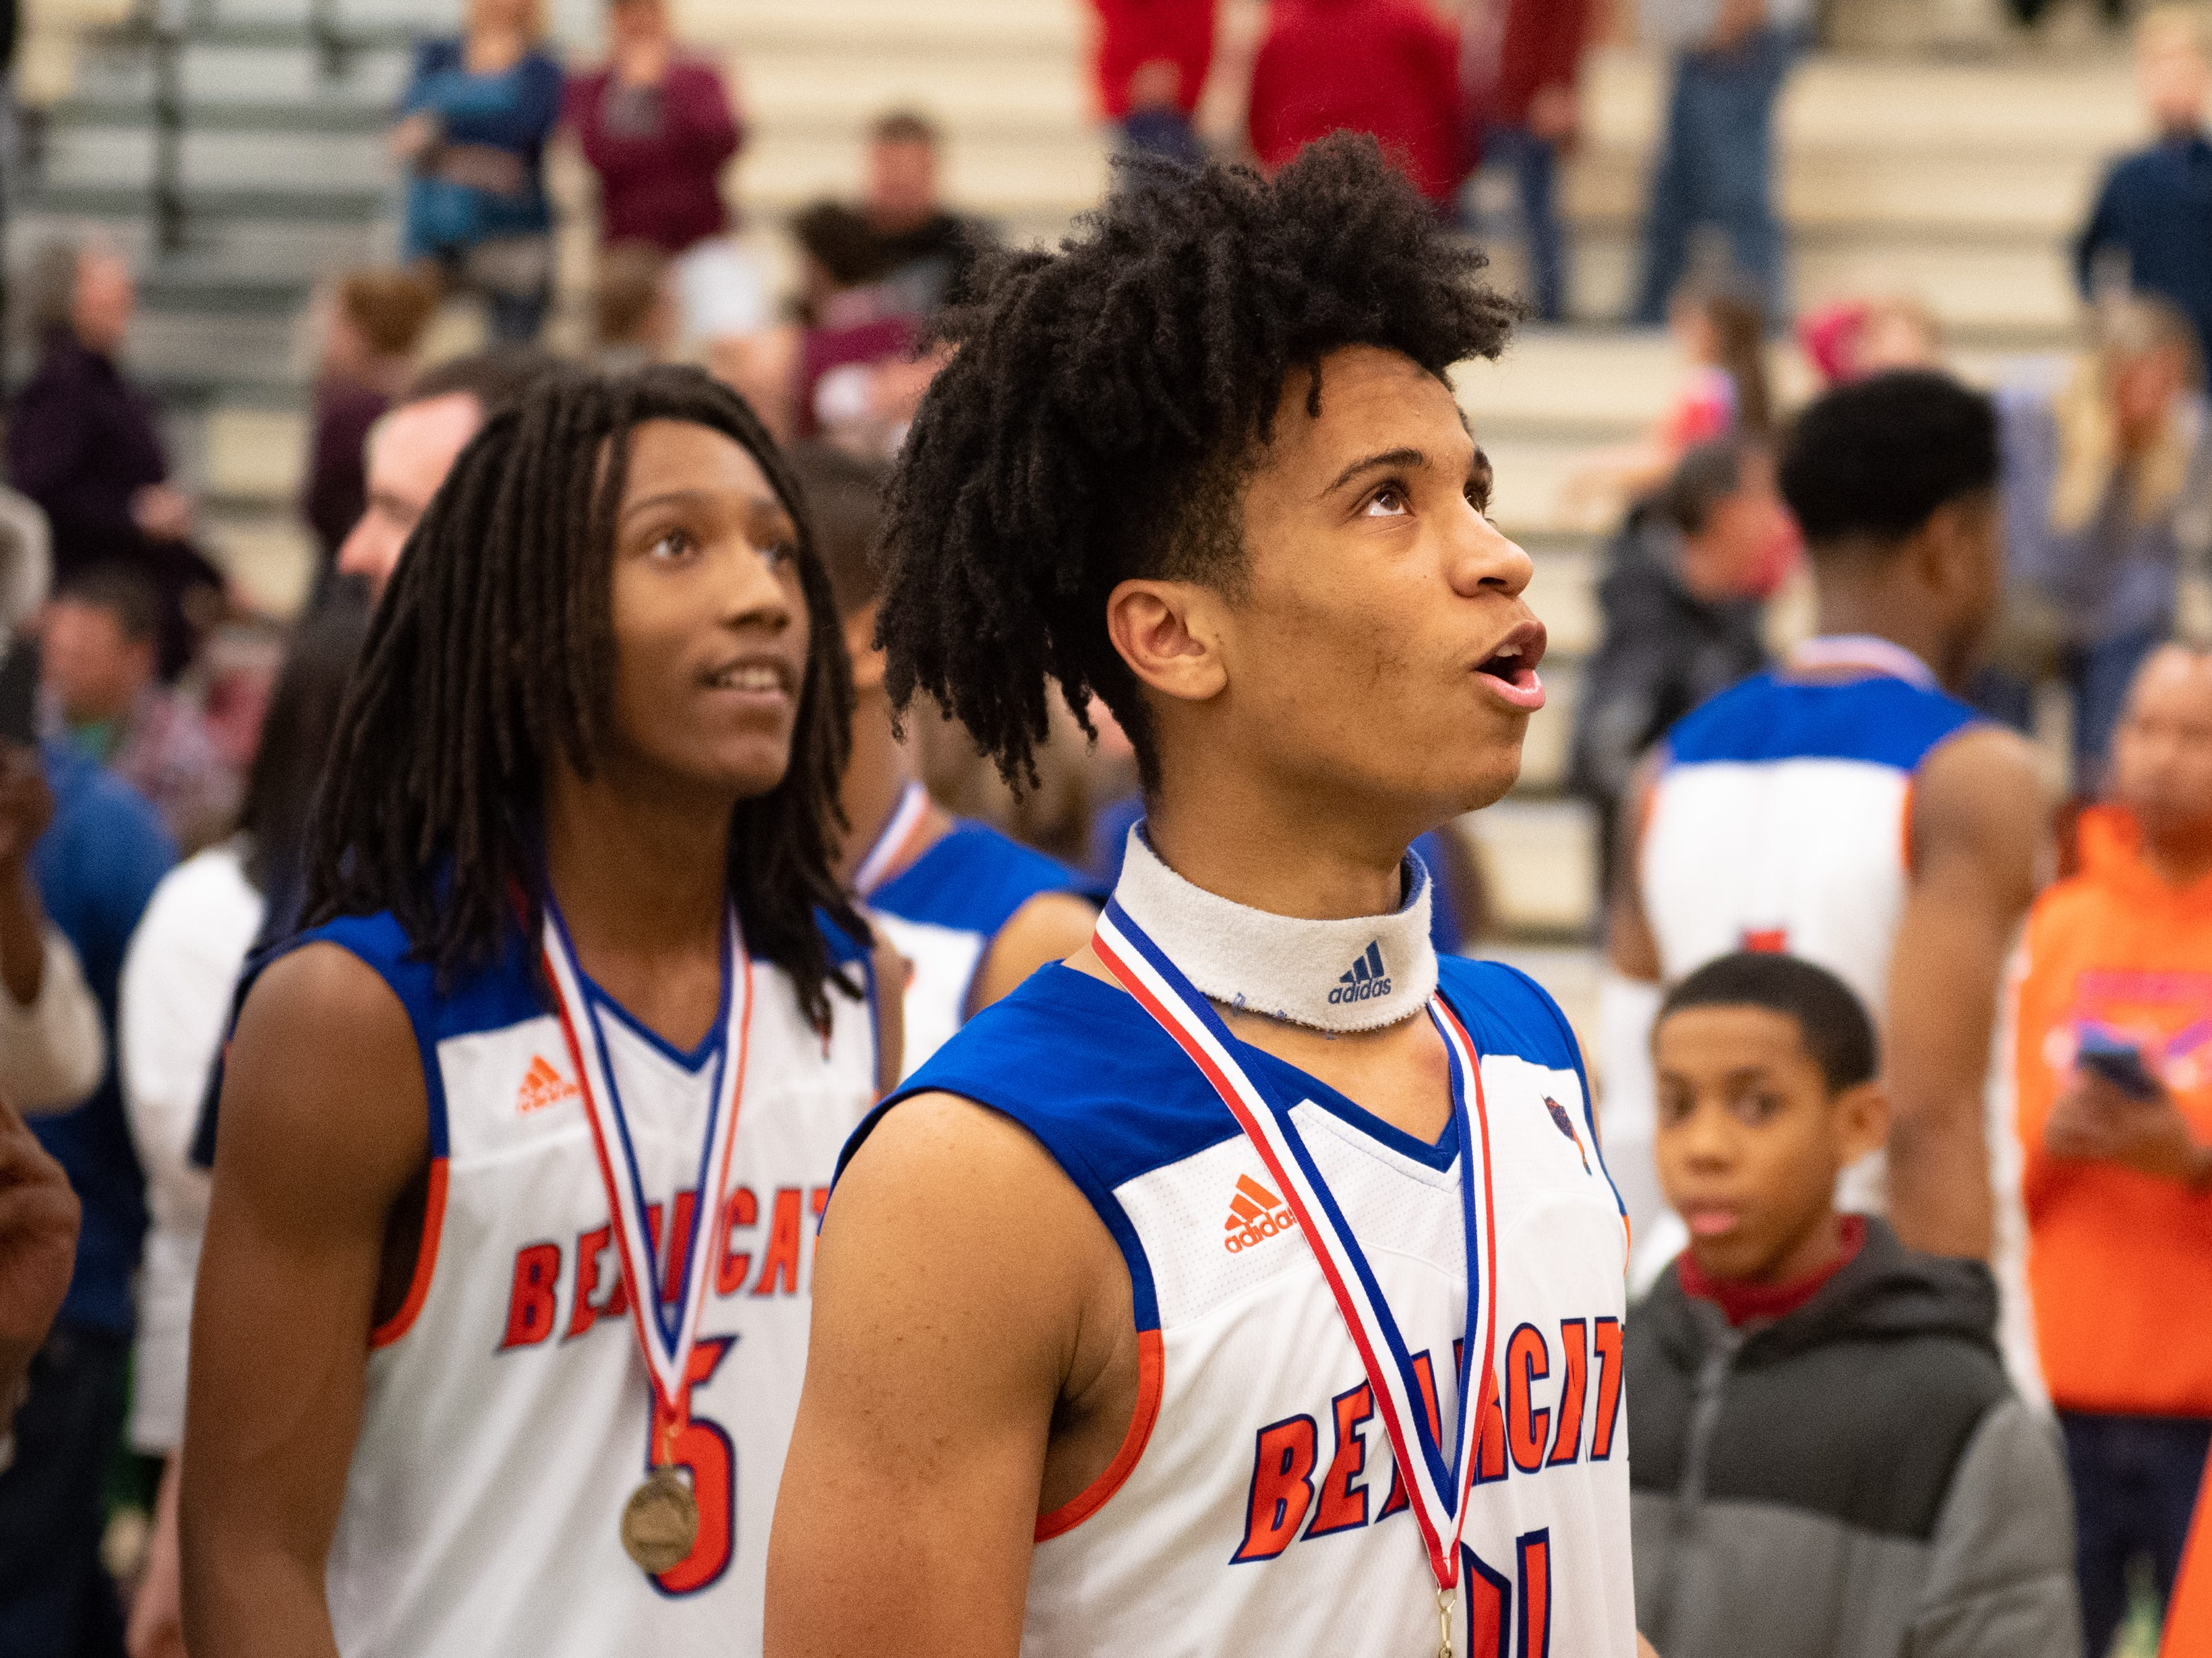 Edward Minter (5) and Jaevon Woodyard (4) watch as their team cuts down the net after the YAIAA Division I title game between York High and New Oxford, Friday, February 15, 2019 at York College. The Bearcats defeated the Colonials 54 to 50.